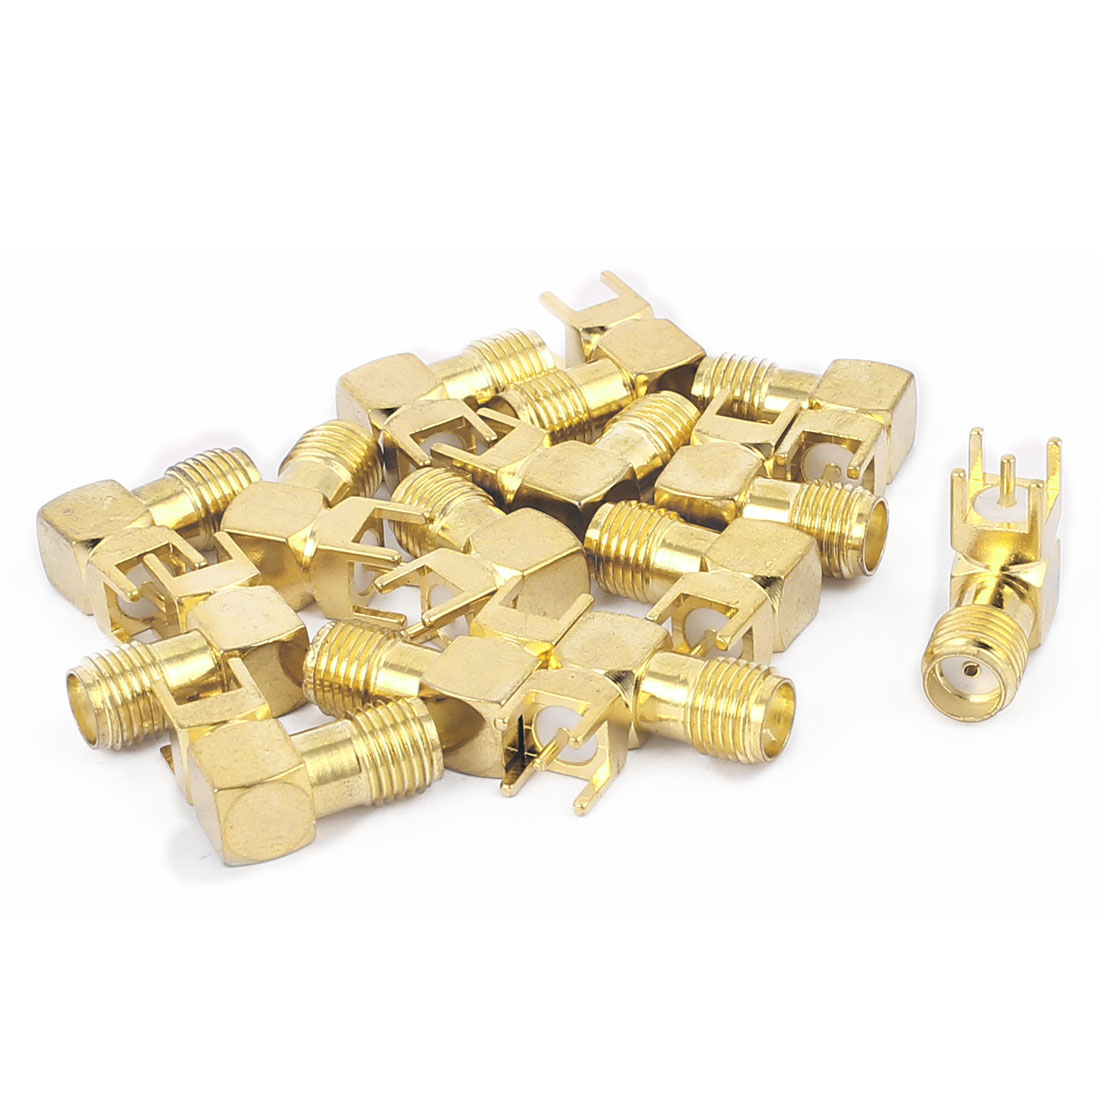 14pcs Gold Tone SMA Female to Male 90 Degree Solder PCB Mount RF Connector